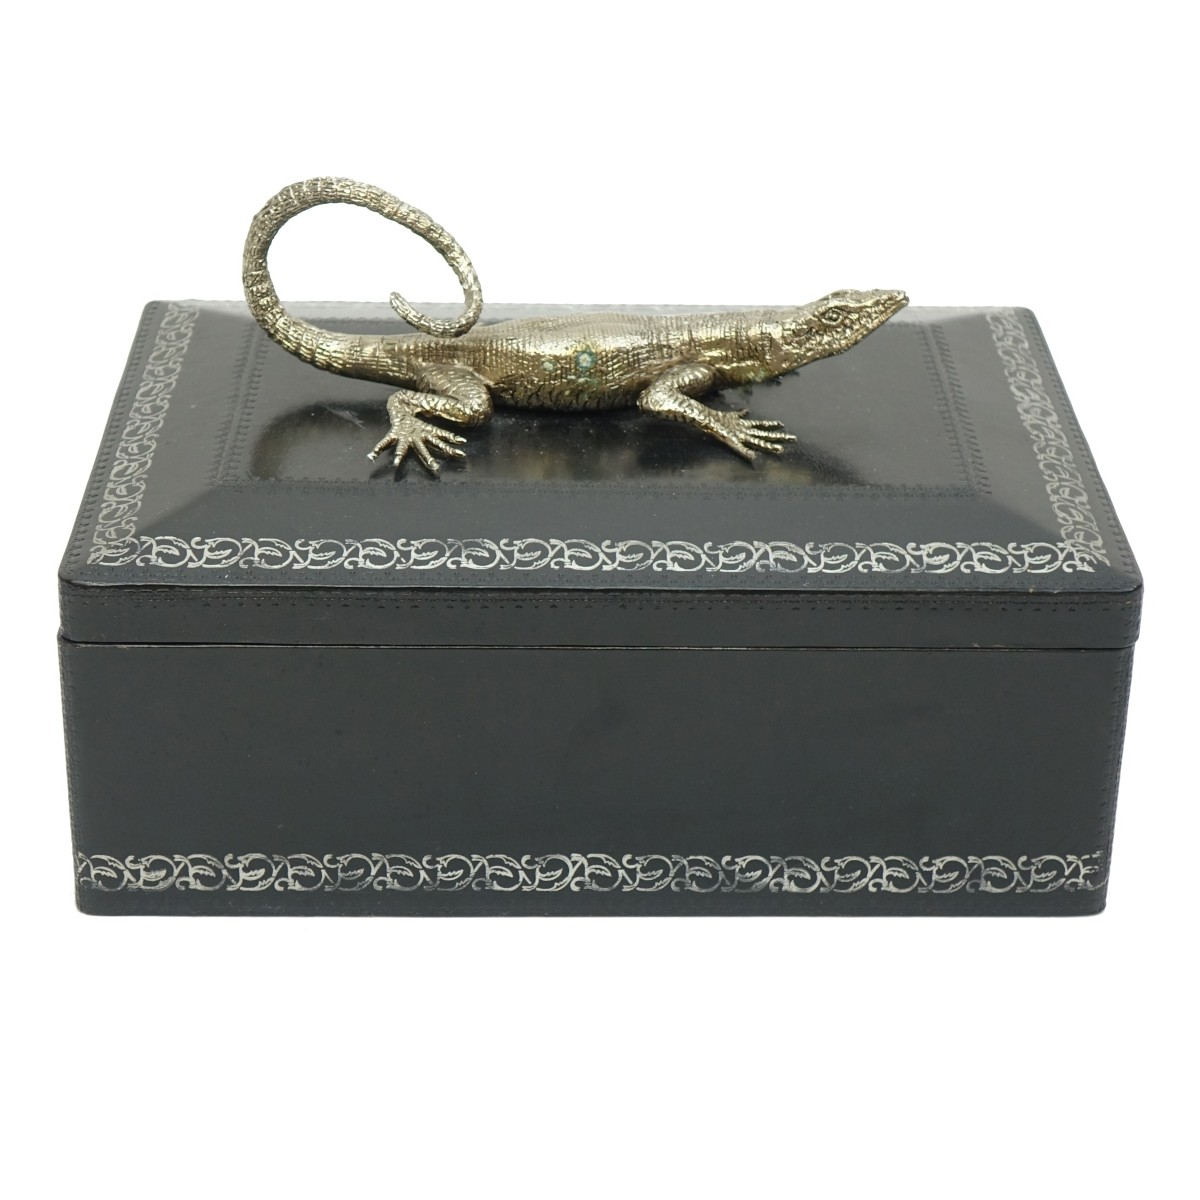 Maitland Smith Leather Wrapped Covered Box